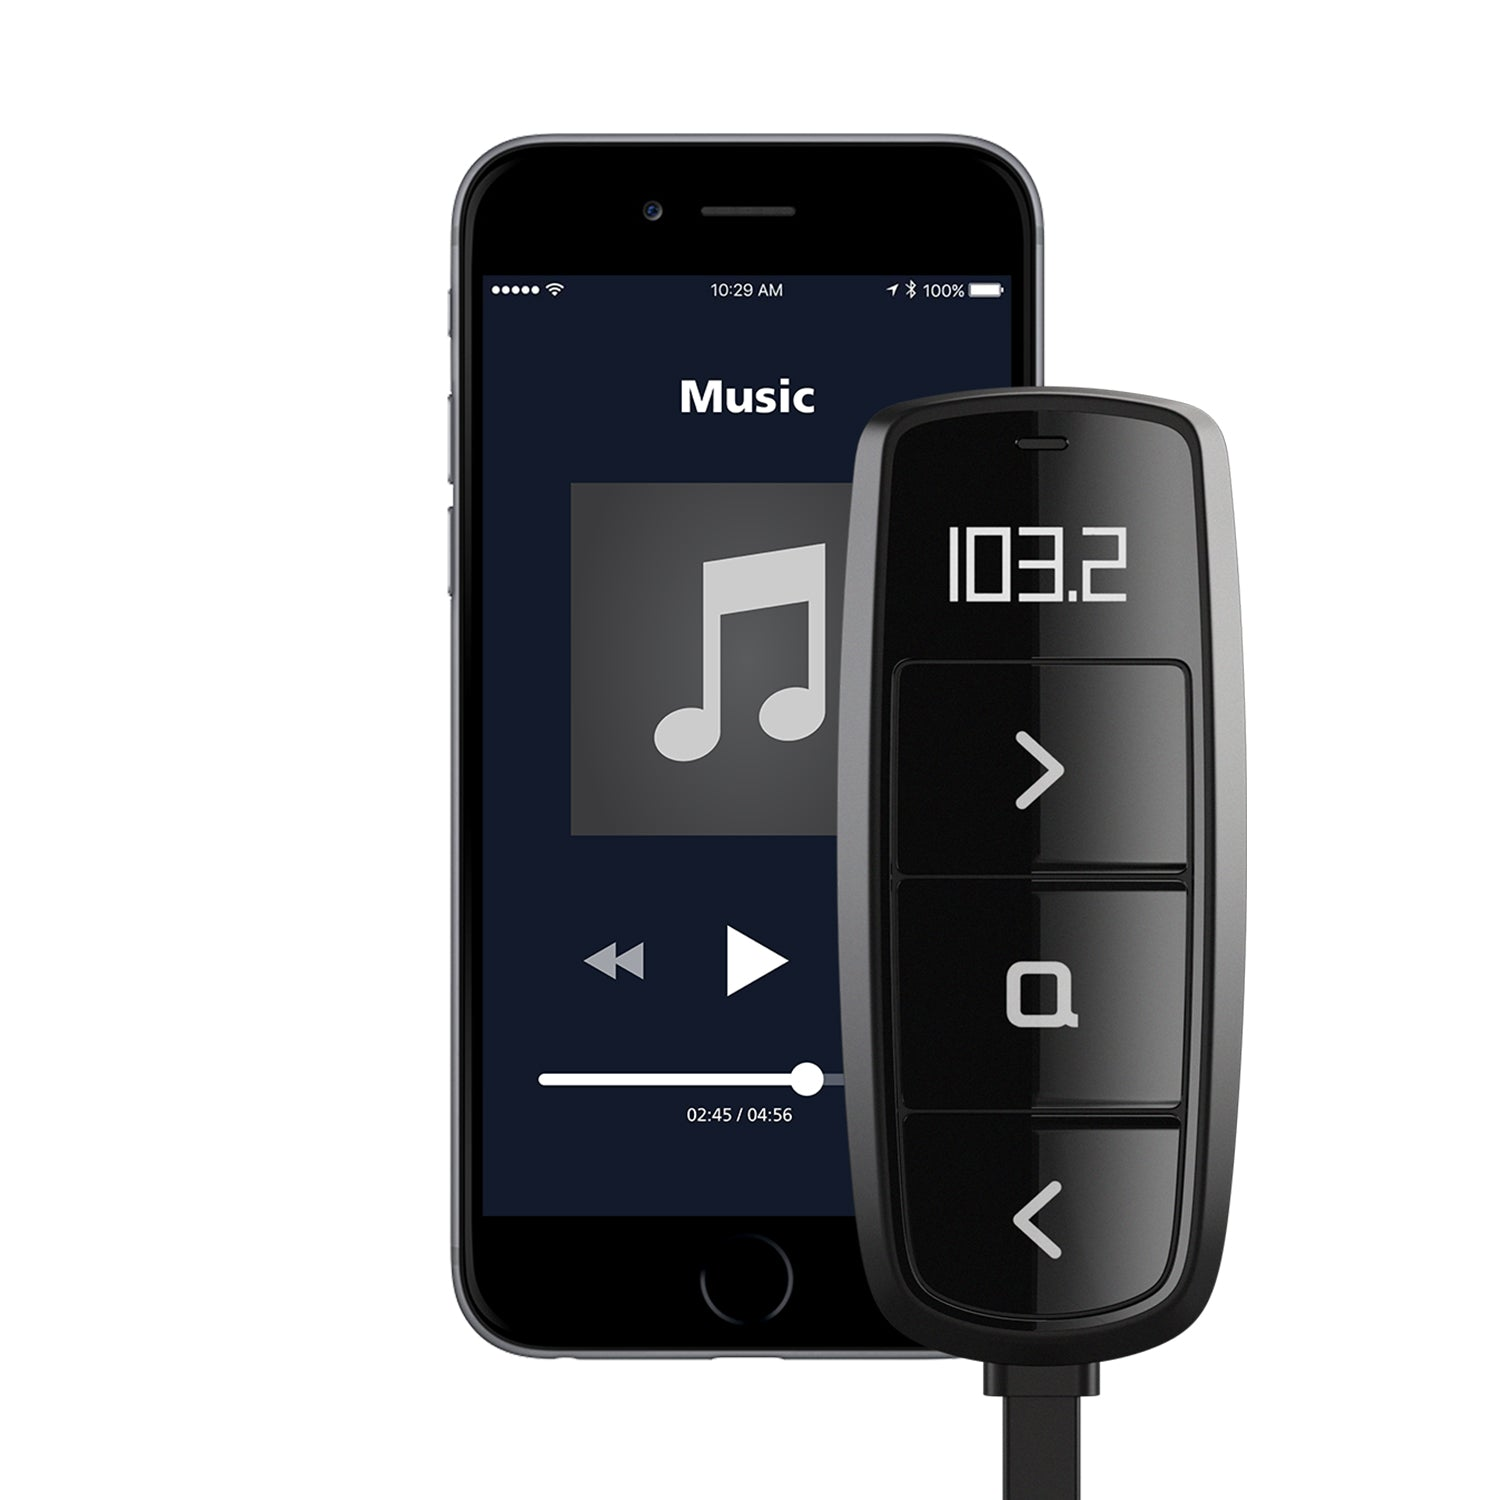 Universal HD Car Audio Adapter<meta charset= utf-8 ><meta name= product-description  content= .product-description ><meta name= short-title  content=  ><div class= hide product-description >- Stream Music Wirelessly in Any Car<br>- FM, 3.5mm AUX cable, and Bluetooth connection<br>- Hands-Free Calls</div><div id= feature_group_list ><div class= feature-group feature-group-attribute   data-attribute='{ type : video_banner , icon :  , media : https://cdn.shopify.com/s/files/1/0703/1149/files/fm_3b7f3205-d238-4e8d-ac5c-63806e62feba.jpg?370935 , title :  , description :  , video_link : https://vimeo.com/249841547 }'></div><div class= feature-group feature-group-attribute feature-group-inverse feature-group-jumbotron  data-attribute='{ type : content_media_banner , icon :  , media : https://cdn.shopify.com/s/files/1/0703/1149/files/fm_kv_011_ec8dbf0a-24ce-4a91-8894-bbc42cec119f.jpg?282526 , title : ZUS<sup>®</sup> Universal HD Car Audio Adapter , description : Stream Music Wirelessly in Any Car. , video_link : }'><div class= row  id= banner ><div class= col-xs-12 feature-media-box ><div class= feature-media b-lazy ><div class= feature-content-box ><div class= feature-content row ><div class= typo typo-heavy col-md-6 ><h2 class= banner-lowercase >ZUS<sup>®</sup> Universal HD Car Audio Adapter</h2><hr><p>Stream Music Wirelessly in Any Car.</p></div></div></div></div></div></div></div><div class= feature-group feature-group-attribute   data-attribute='{ type : content_media , icon : handsfree_j , media : https://cdn.shopify.com/s/files/1/0703/1149/files/hands_call_free_b6cdfbf7-0008-4039-aef7-8d3cf3aa7af6.png?282527 , title : Hands Free in Calls , description : Make and answer calls hands-free to ensure your safety while driving. Built-in microphone lets you have crystal clear phone conversations. , video_link : }'><div class= row ><div class= col-xs-12 col-md-6 feature-content-box ><div class= feature-content ><div class= typo typo-heavy ><h2>Hands Free in Calls</h2><hr><p>Make and answer calls hands-free to ensure your safety while driving. Built-in microphone lets you have crystal clear phone conversations.</p></div></div></div><div class= col-xs-12 col-md-6 feature-media-box ></div></div></div><div class= feature-group feature-group-attribute   data-attribute='{ type : media_content , icon :  , media : https://cdn.shopify.com/s/files/1/0703/1149/files/Stream_Music_Wirelessly_in_Any_Car_7800e8ce-6208-4673-a3a7-1bec1c6bcf57.png?282528 , title : Stream Music Wirelessly in Any Car , description : Enjoy bluetooth capabilities from answering calls to listening to HD music hands-free. Compatible with any bluetooth smartphone (iPhone, Android, Blackberry, etc.) and for all cars with or without an AUX port. , video_link : https://player.vimeo.com/video/249841547 }'><div class= row ><div class= col-xs-12 col-md-6 col-md-push-6 feature-content-box ><div class= feature-content ><div class= typo typo-heavy ><h2>Stream Music Wirelessly in Any Car</h2><hr><p>Enjoy bluetooth capabilities from answering calls to listening to HD music hands-free. Compatible with any bluetooth smartphone (iPhone, Android, Blackberry, etc.) and for all cars with or without an AUX port.</p></div></div></div><div class= col-xs-12 col-md-6 col-md-pull-6 feature-media-box ></div></div></div><div class= feature-group feature-group-attribute   data-attribute='{ type : content_media , icon : compatible_j , media : https://cdn.shopify.com/s/files/1/0703/1149/files/Compatibility_with_All_Cars0_2ac460d6-a3d9-45f4-be8a-bd120ec979ee.png?282529 , title : Compatibility with All Cars , description : Works with all cars with an AUX input or FM radio. Powered by any USB charger. , video_link : }'><div class= row ><div class= col-xs-12 col-md-6 feature-content-box ><div class= feature-content ><div class= typo typo-heavy ><h2>Compatibility with All Cars</h2><hr><p>Works with all cars with an AUX input or FM radio. Powered by any USB charger.</p></div></div></div><div class= col-xs-12 col-md-6 feature-media-box ></div></div></div><div class= feature-group feature-group-attribute feature-group-inverse  feature-group-bg  data-attribute='{ type : media_content , icon : sleek-design , media : https://cdn.shopify.com/s/files/1/0703/1149/files/Design_7c662878-b96c-4815-b010-d2d0f4904e04.png?282530 , title : Sleek Design , description : Sleek, modern design to fit any car interior. The easy-to-use multi-function button allows you to change songs or play/pause/next/previous while keeping your eyes on the road.<br/><h2>Premium Material</h2><hr>Premium German Bayer PC material makes it more sturdy and exquisite. , video_link : }'><div class= row ><div class= col-xs-12 col-md-6 col-md-push-6 feature-content-box ><div class= feature-content ><div class= typo typo-heavy ><h2>Sleek Design</h2><hr><p>Sleek, modern design to fit any car interior. The easy-to-use multi-function button allows you to change songs or play/pause/next/previous while keeping your eyes on the road.</p><h2>Premium Material</h2><hr> Premium German Bayer PC material makes it more sturdy and exquisite.<p> </p></div></div></div><div class= col-xs-12 col-md-6 col-md-pull-6 feature-media-box ></div></div></div><div class= feature-group feature-group-attribute   data-attribute='{ type : media_content , icon :  , media : https://cdn.shopify.com/s/files/1/0703/1149/files/Cable_Management1-04-02.svg?1854570054376784718 , title : Cable Management , description : We have designed a flat cable in order to give the adapter a cleaner look. To keep the cable tucked away, use the included adhesive strips to tape the cable to your car's dashboard. , video_link : }'><div class= row ><div class= col-xs-12 col-md-6 col-md-push-6 feature-content-box ><div class= feature-content ><div class= typo typo-heavy ><h2>Cable Management</h2><hr><p>We have designed a flat cable in order to give the adapter a cleaner look. To keep the cable tucked away, use the included adhesive strips to tape the cable to your car's dashboard.</p></div></div></div><div class= col-xs-12 col-md-6 col-md-pull-6 feature-media-box ></div></div></div><div class= feature-group feature-group-attribute   data-attribute='{ type : media_content , icon : icon_auto_connect , media : https://cdn.shopify.com/s/files/1/0703/1149/files/auto_connect_40419c9a-9361-4119-b647-f4d8ef2f6084.png?282531 , title : Auto-Connect , description : Auto-Connect feature will automatically return to previously used mobile device, letting you get back to where you were with music as soon as you get in the car. , video_link : }'><div class= row ><div class= col-xs-12 col-md-6 col-md-push-6 feature-content-box ><div class= feature-content ><div class= typo typo-heavy ><h2>Auto-Connect</h2><hr><p>Auto-Connect feature will automatically return to previously used mobile device, letting you get back to where you were with music as soon as you get in the car.</p></div></div></div><div class= col-xs-12 col-md-6 col-md-pull-6 feature-media-box ></div></div></div><div class= feature-group feature-group-attribute feature-group-contain  data-attribute='{ type : content_media , icon :  , media : https://cdn.shopify.com/s/files/1/0703/1149/files/broad_compatibility_142b71c4-812d-4f95-ad79-da1ee02cbac0.png?282532 , title : Broad Compatibility , description : Compatible with iPhones, Android, Blackberry, MP3 players and all other Bluetooth enabled music players. , video_link : }'><div class= row ><div class= col-xs-12 col-md-6 feature-content-box ><div class= feature-content ><div class= typo typo-heavy ><h2>Broad Compatibility</h2><hr><p>Compatible with iPhones, Android, Blackberry, MP3 players and all other Bluetooth enabled music players.</p></div></div></div><div class= col-xs-12 col-md-6 feature-media-box ></div></div></div><div class= feature-group feature-group-attribute   data-attribute='{ type : fm_package_includes }'>fm_package_includes</div><div class= feature-group feature-group-attribute   data-attribute='{ type : fm_tech_spec }'>fm_tech_spec</div><div class= feature-group feature-group-attribute feature-group-inverse  data-attribute='{ type : about_nonda }'>about_nonda</div><div class= feature-group feature-group-attribute feature-group-inverse  data-attribute='{ type : nonda_awards }'>nonda_awards</div></div>